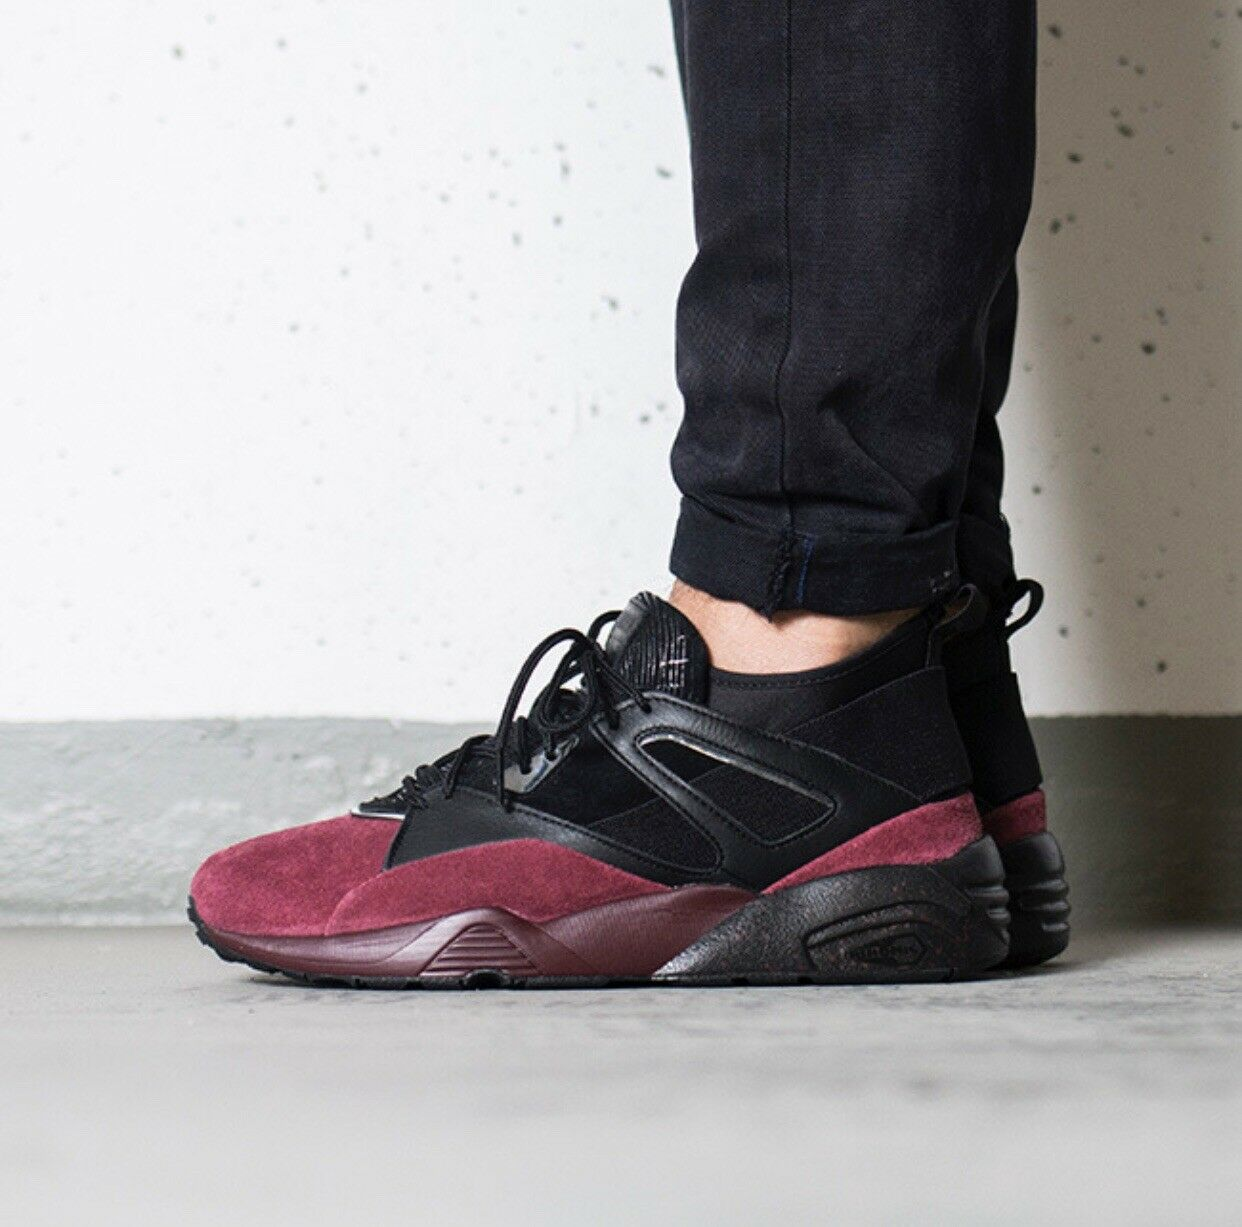 Neu Puma Sneaker Blaze Of Glory Halloween, 2016, Limited, UNISEX